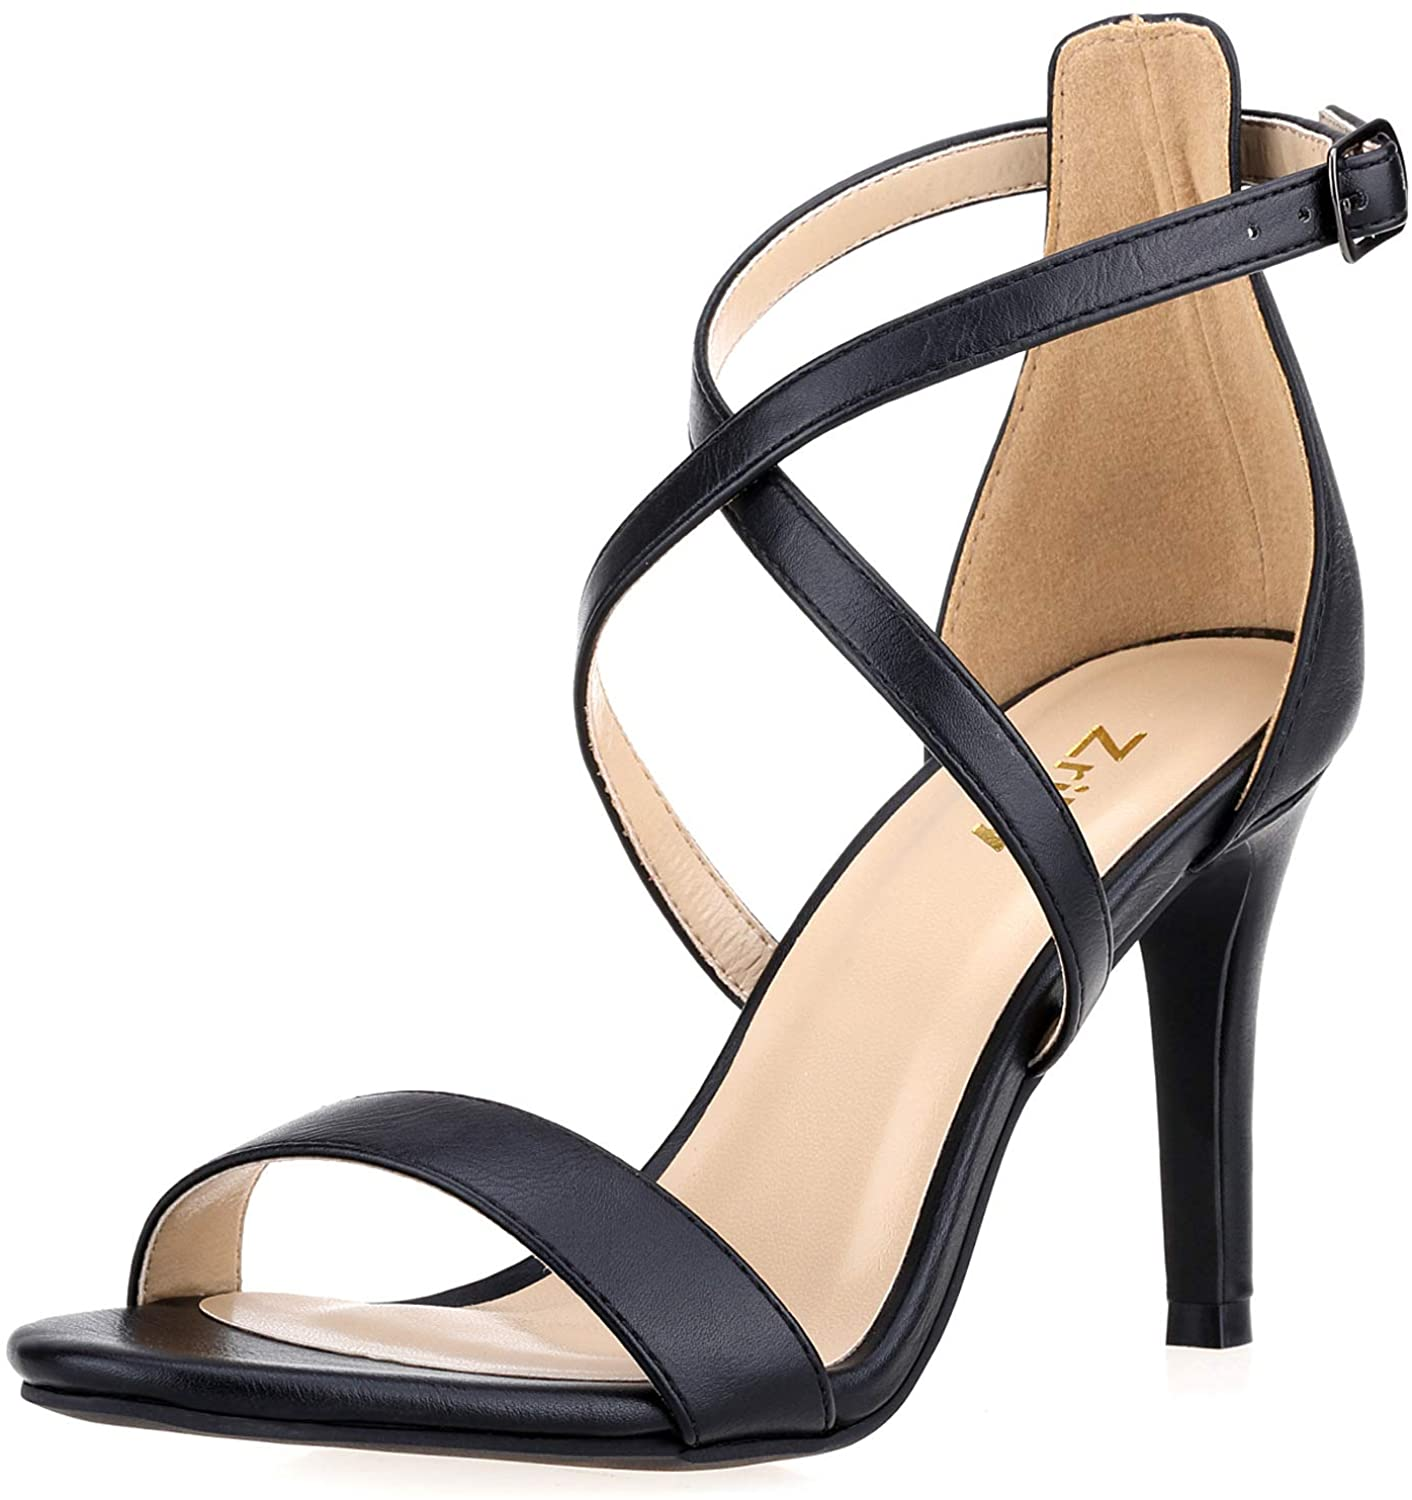 ZriEy Women Heeled Sandals Cross Ankle Strap Sandals Open Toe Strappy High Heels Party Wedding Shoes